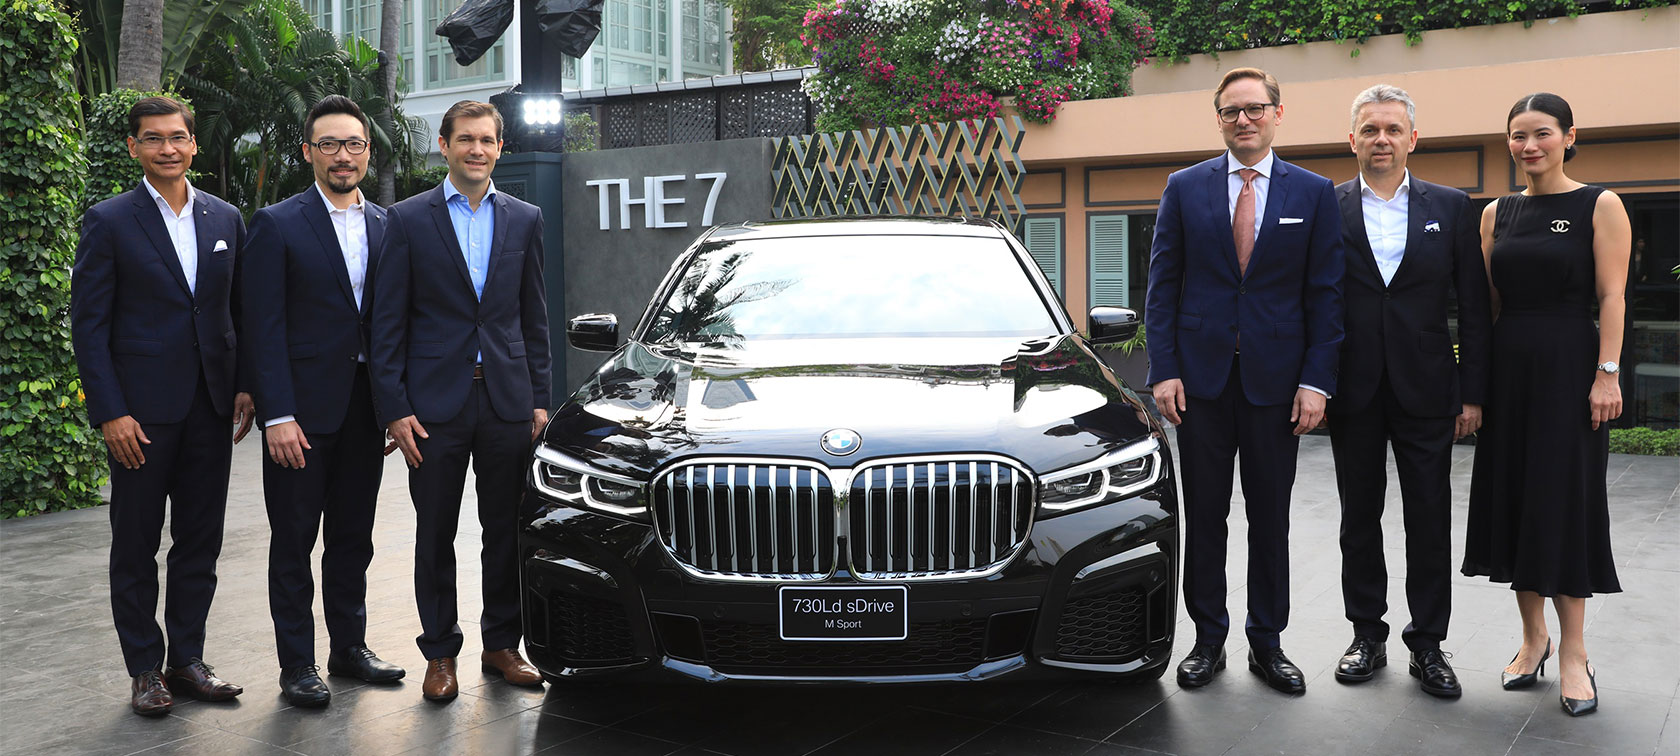 Bmw All News 14 01 20 The New Bmw 7 Series